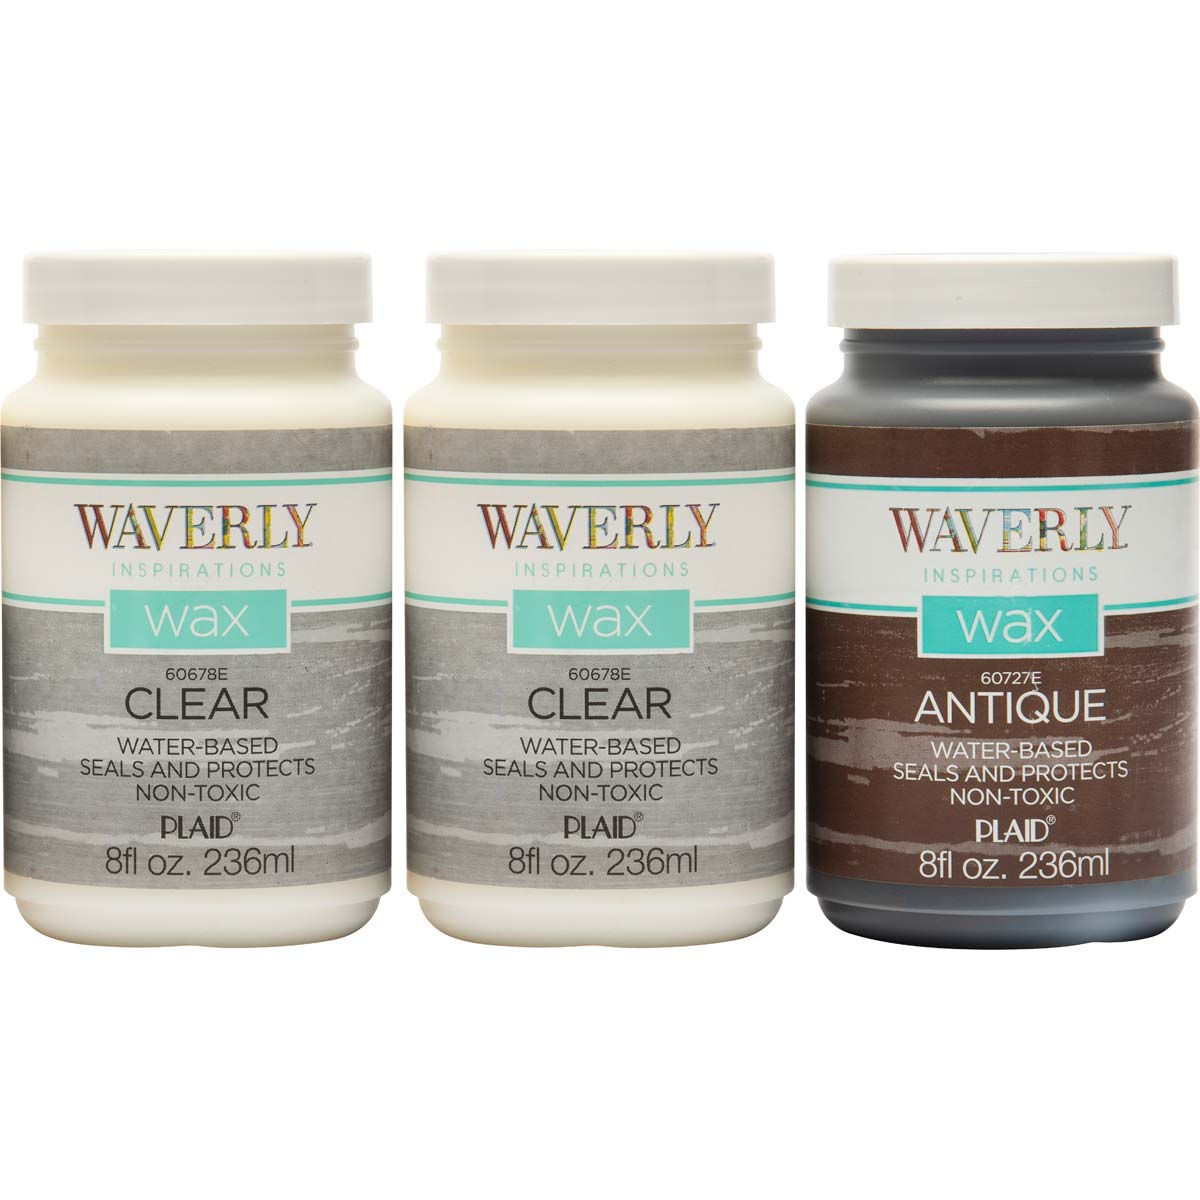 Waverly ® Inspirations Wax Set - Clear and Antique, 3 pc. - 13409